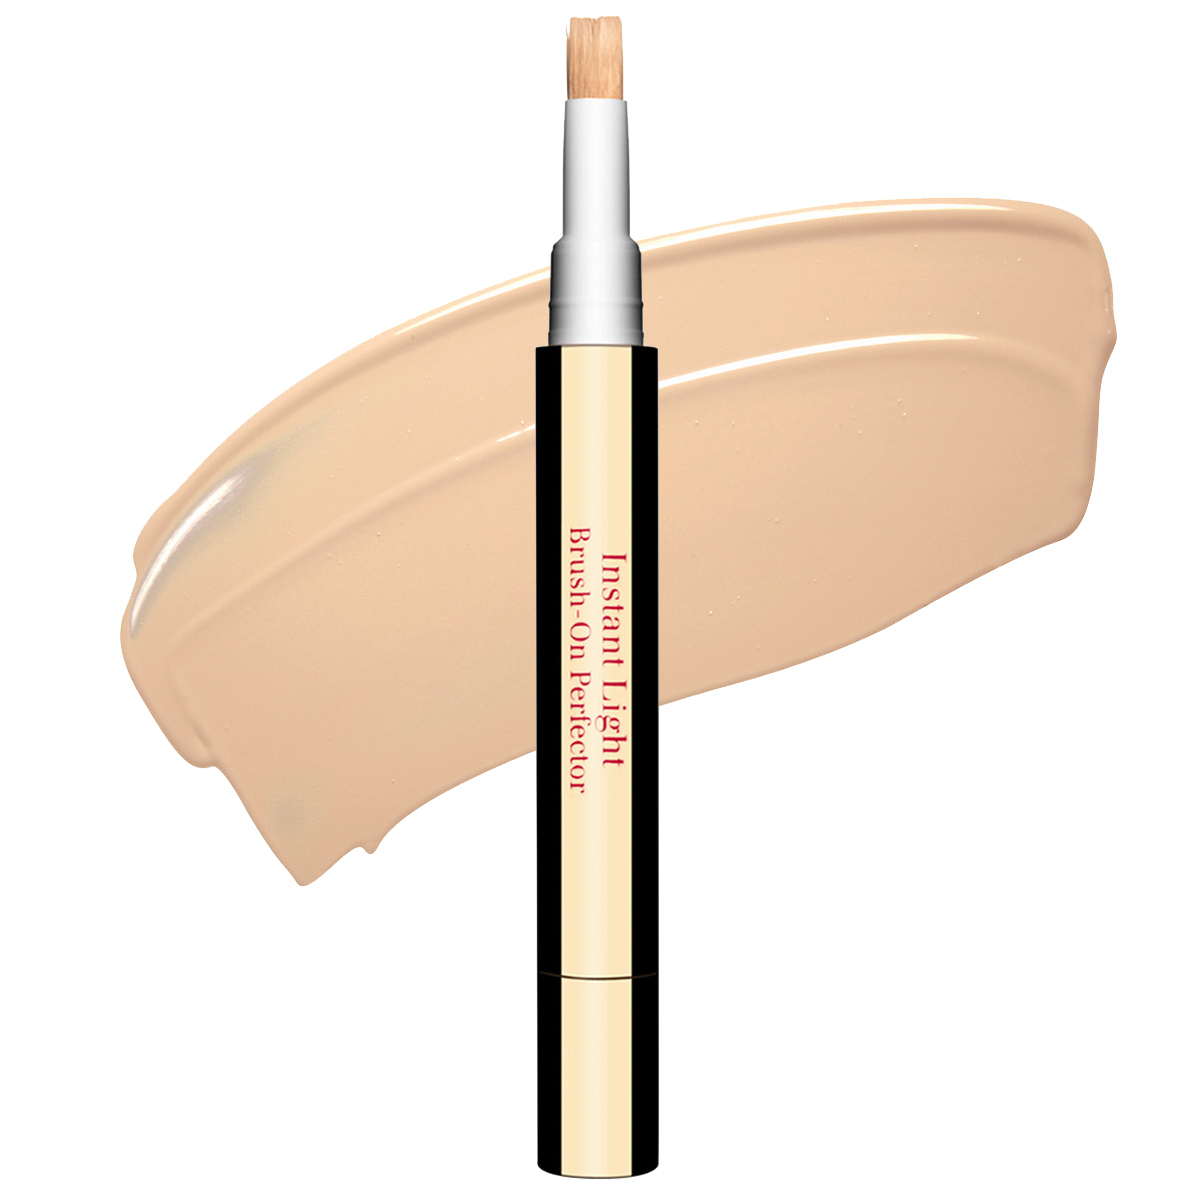 Clarins Instant Light Brush On Perfector 01 Pink Beige